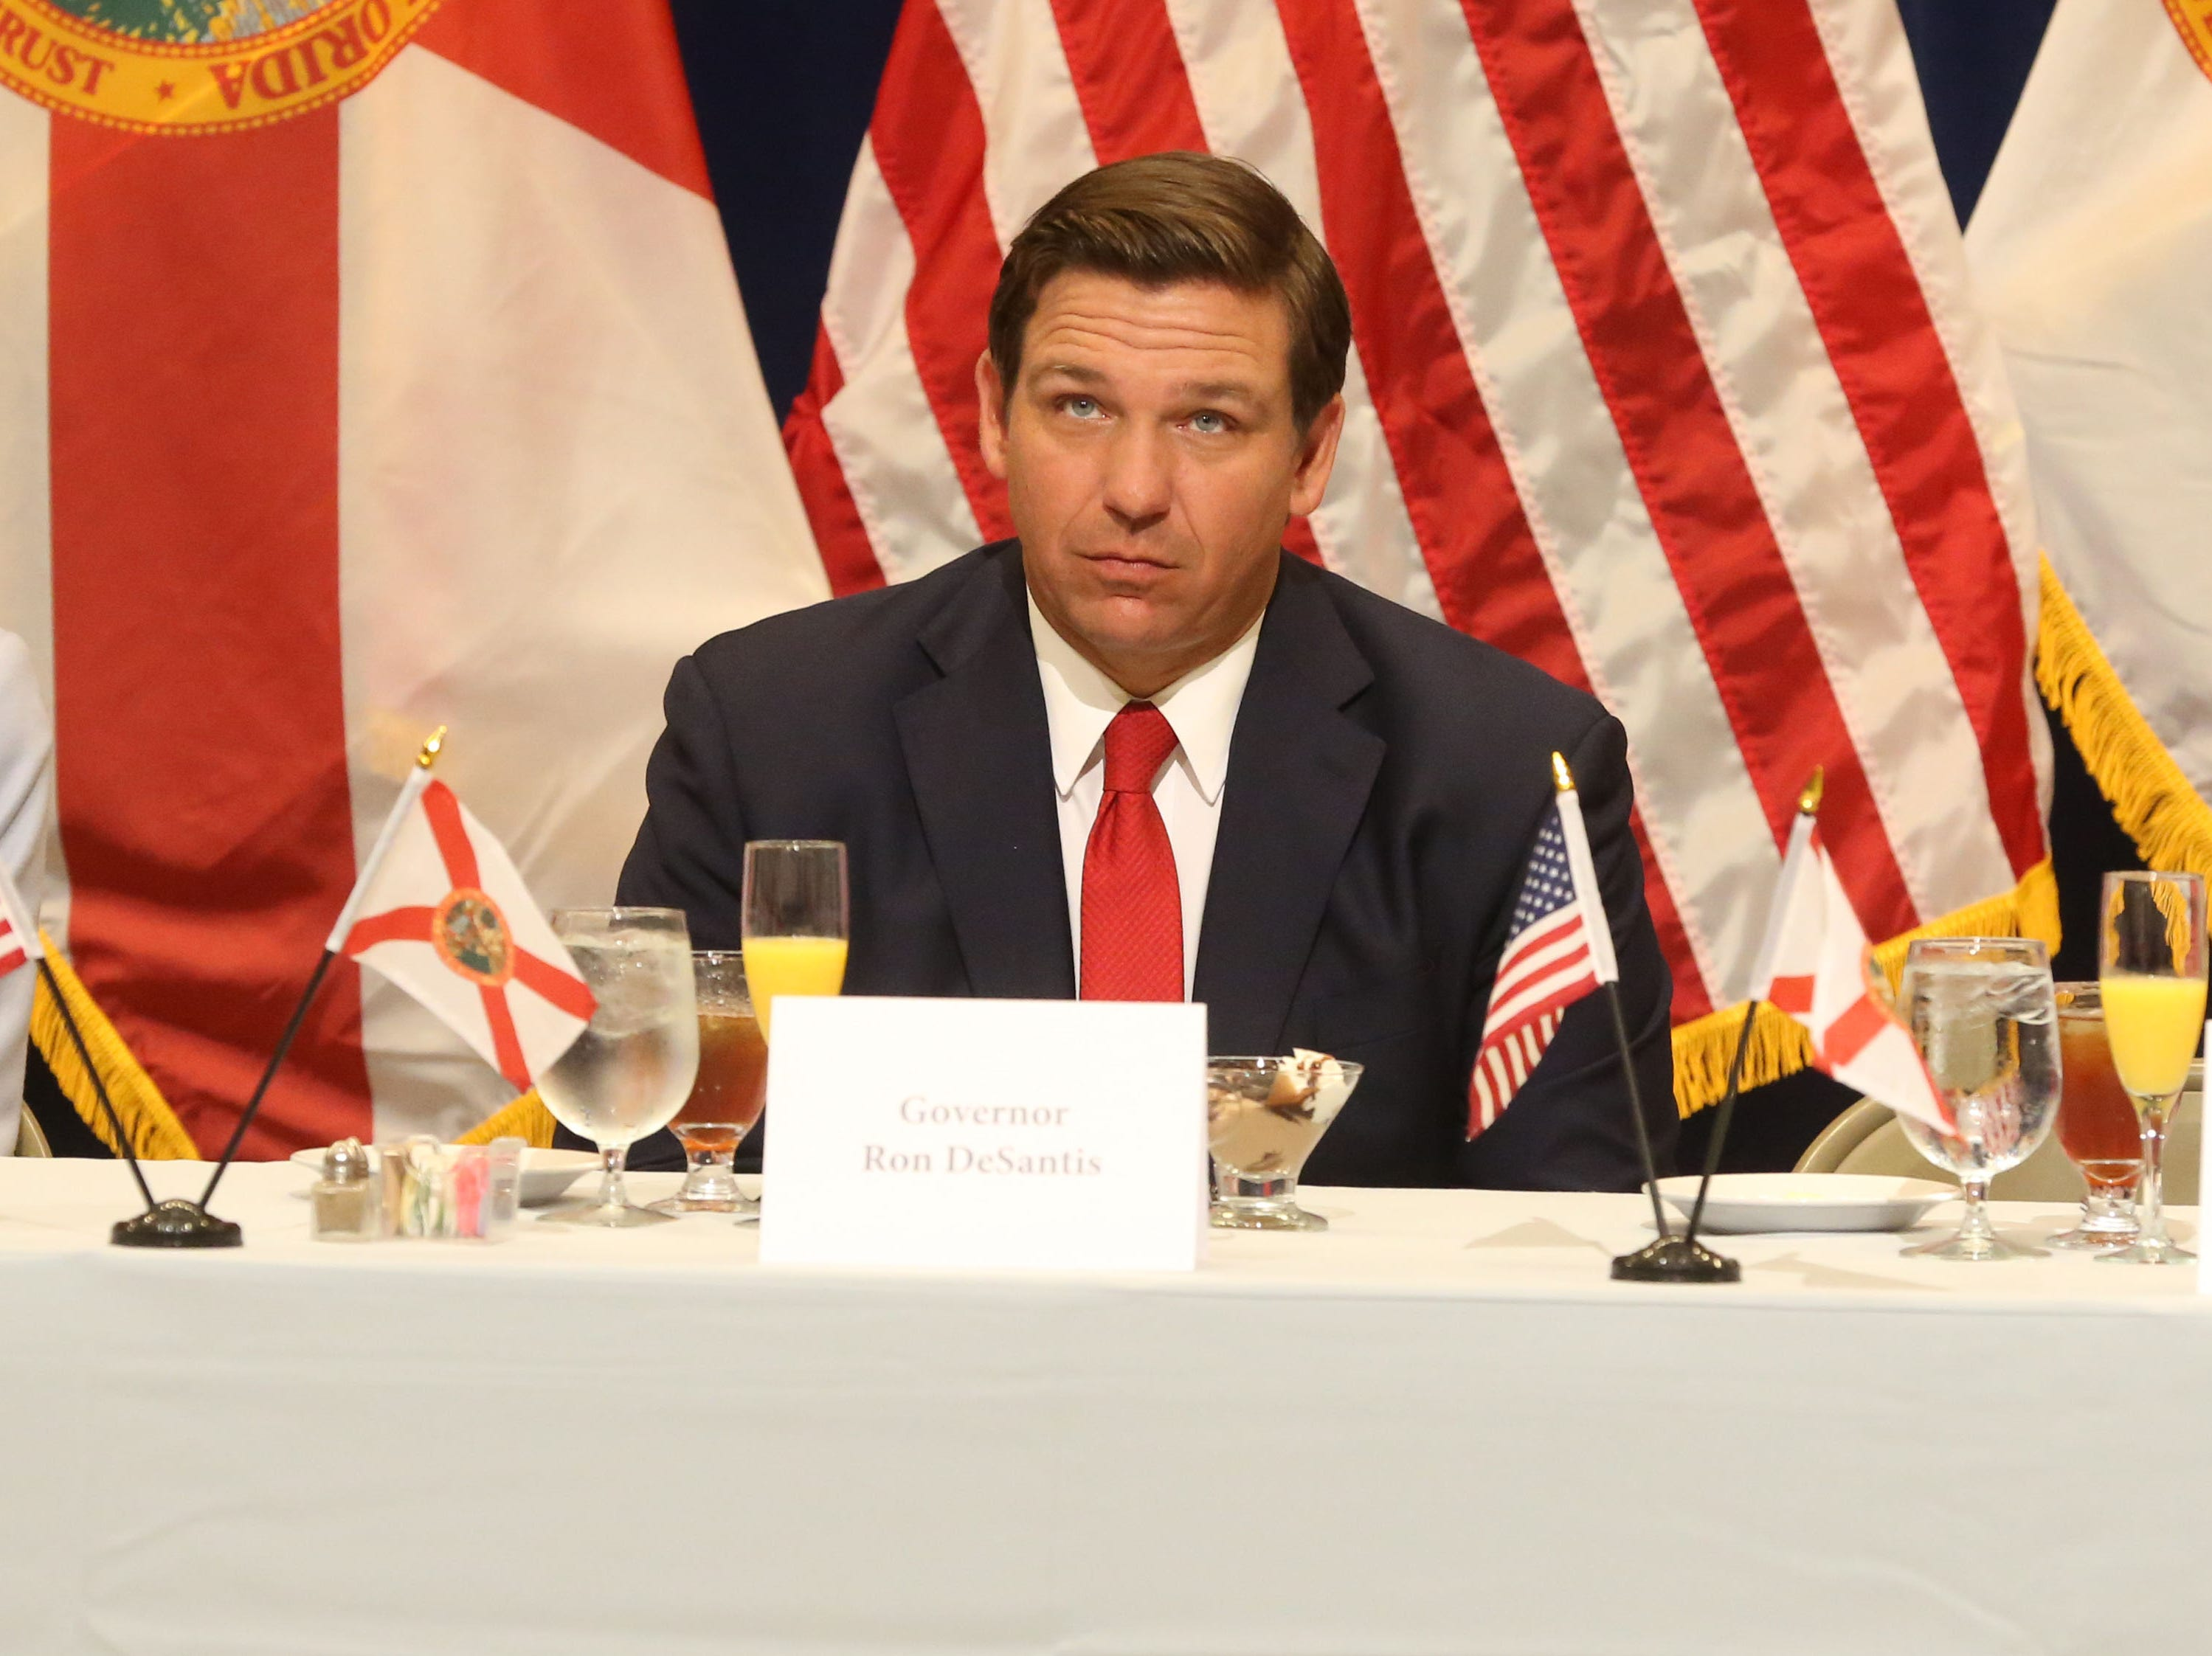 For the first time in Inaugural history, Gov. Ron DeSantis addresses FloridaÕs Legislative leaders and Cabinet officials. DeSantis discusses his plans to work with our stateÕs elected leaders to achieve a Bold Vision for a Brighter Future, Tuesday, Jan. 8, 2019. Gov. Ron DeSantis listens to Lt. Gov. Jeanette Nunez speak at the luncheon.